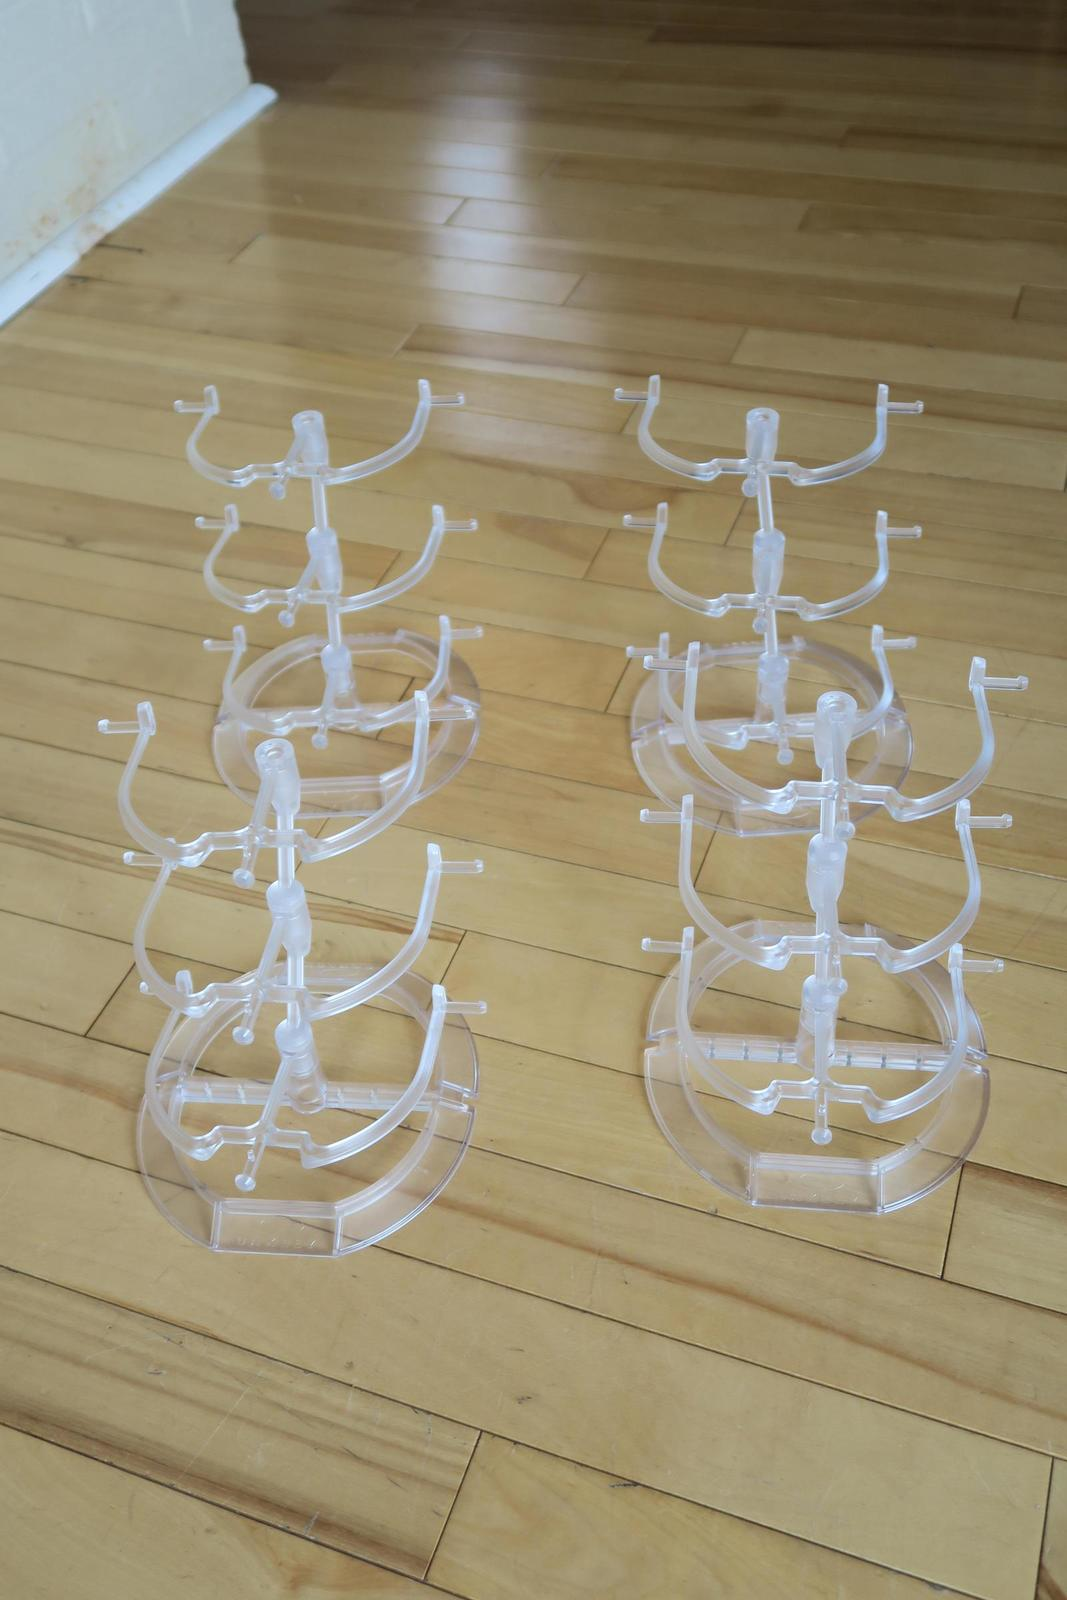 4.0 and 3.0 Plastic Risers!!! (3, 2 and 1 Tier.) - lyiVTWJ.jpg